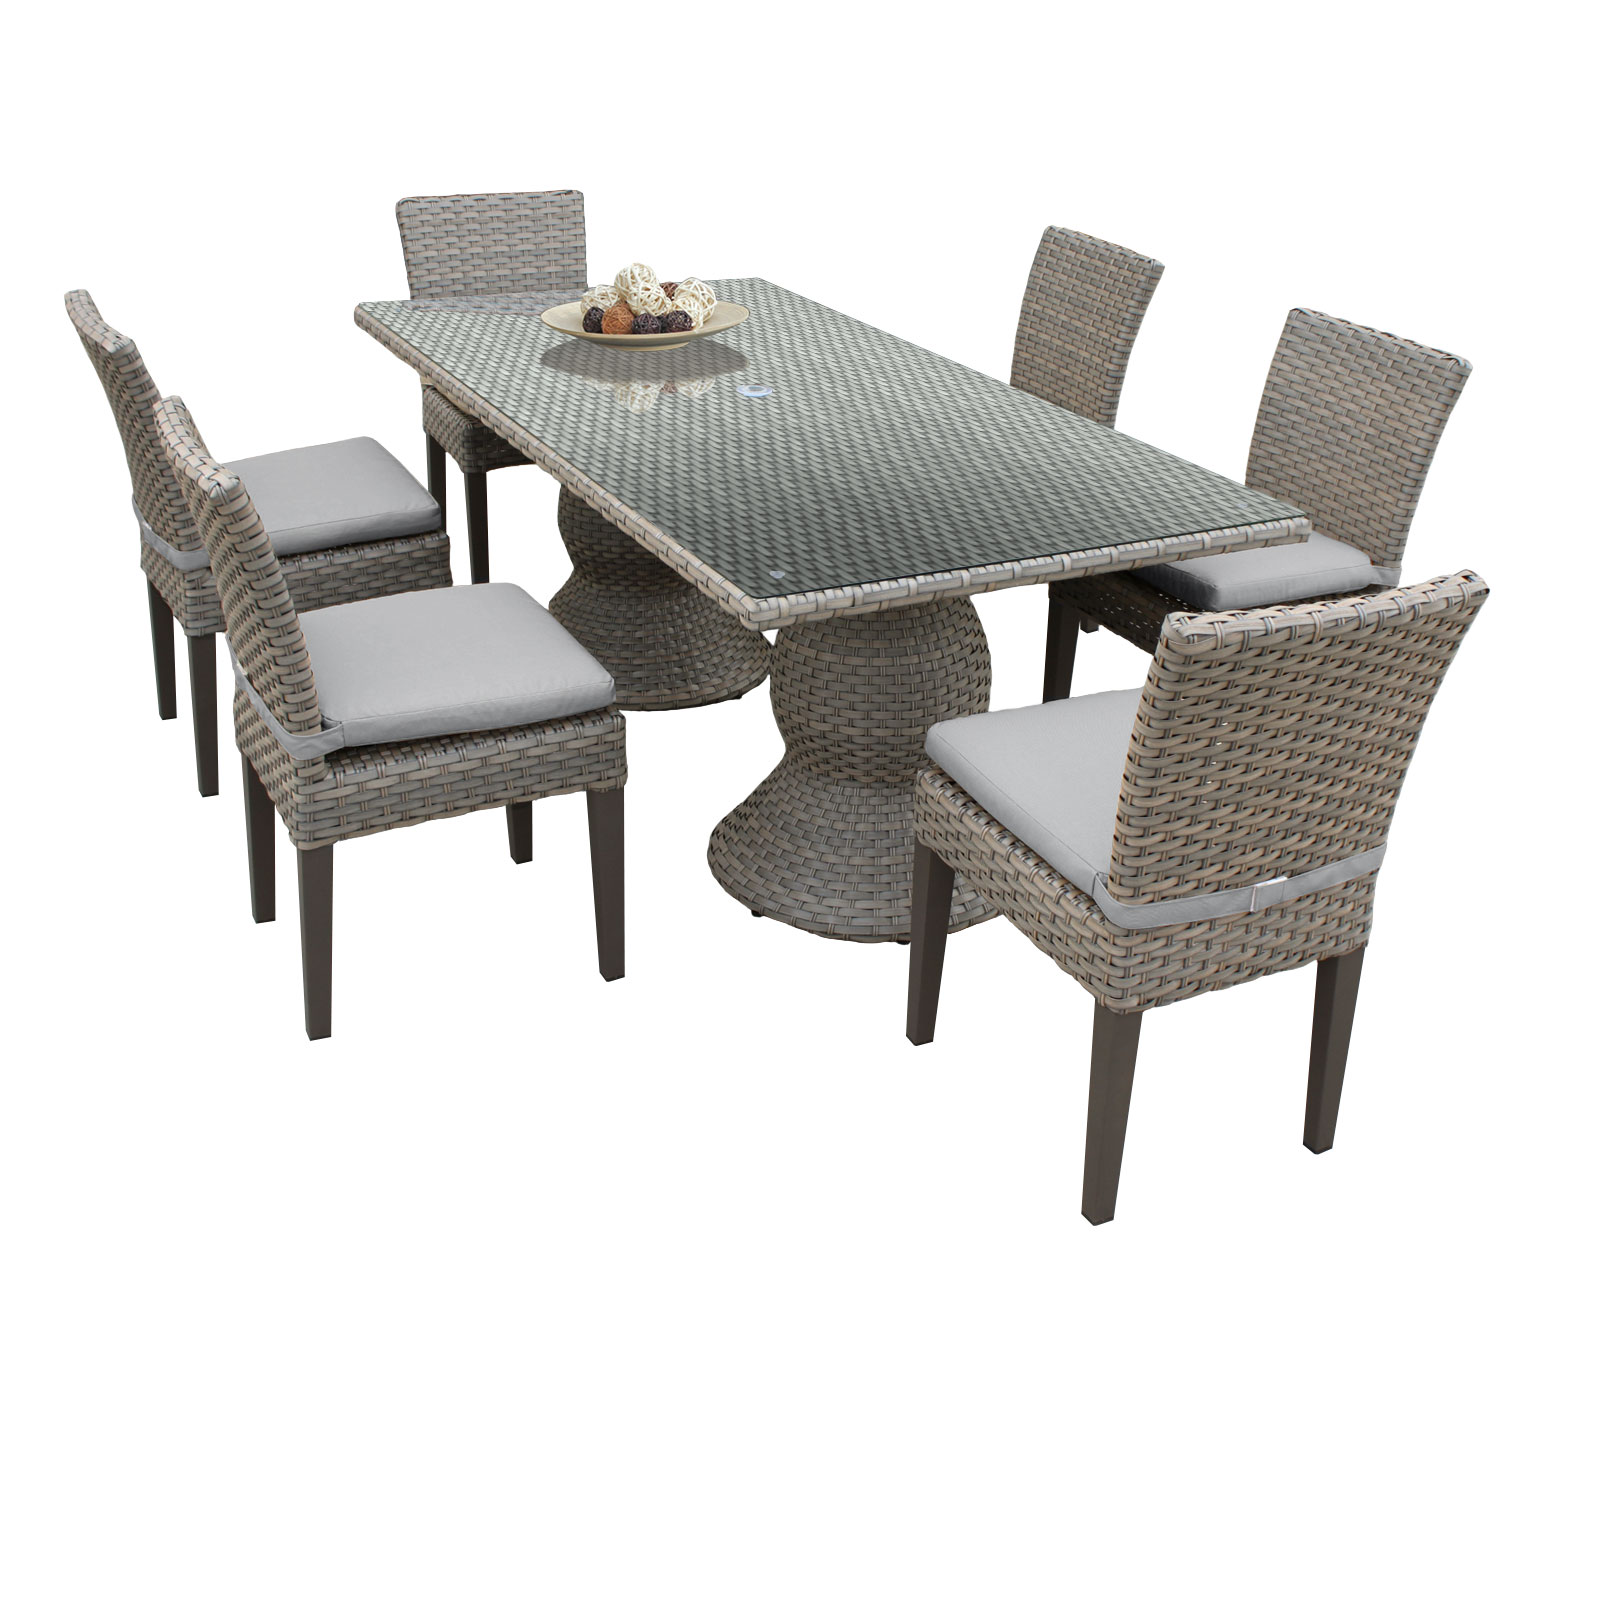 Harmony Rectangular Outdoor Patio Dining Table With 6 Chairs  Walmart.com